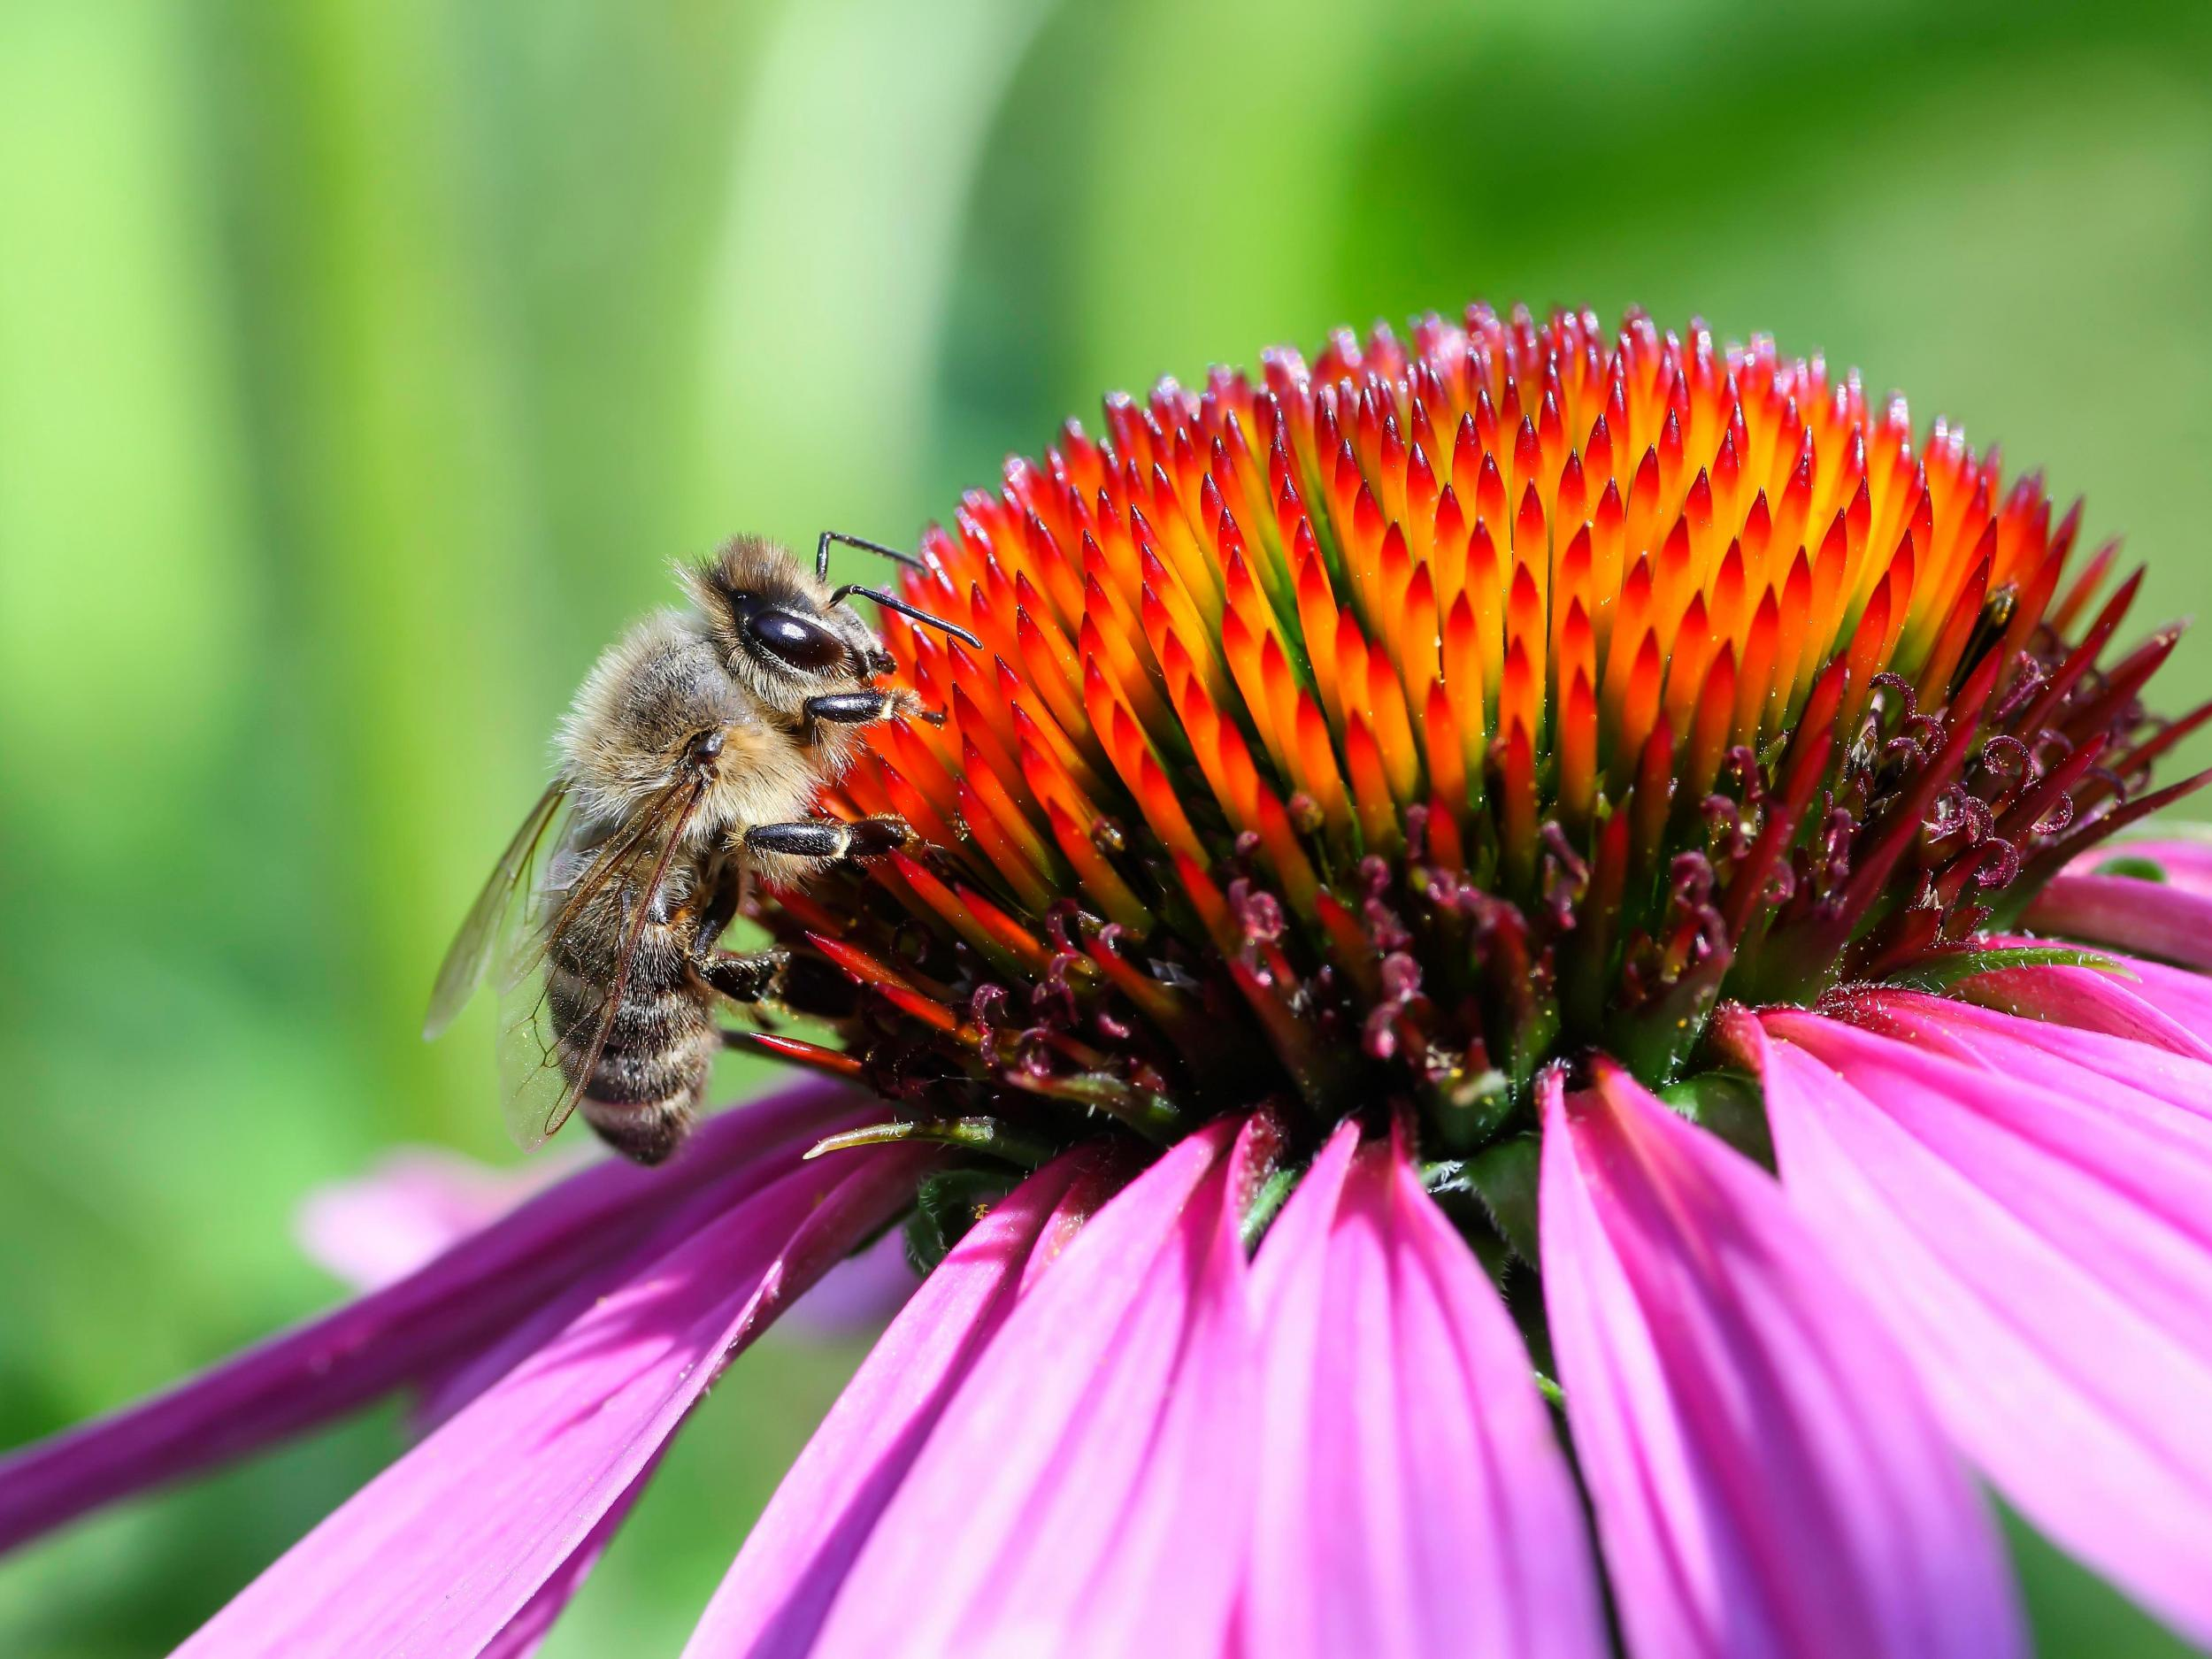 Hyper-alarming' study reveals dramatic decline of insect